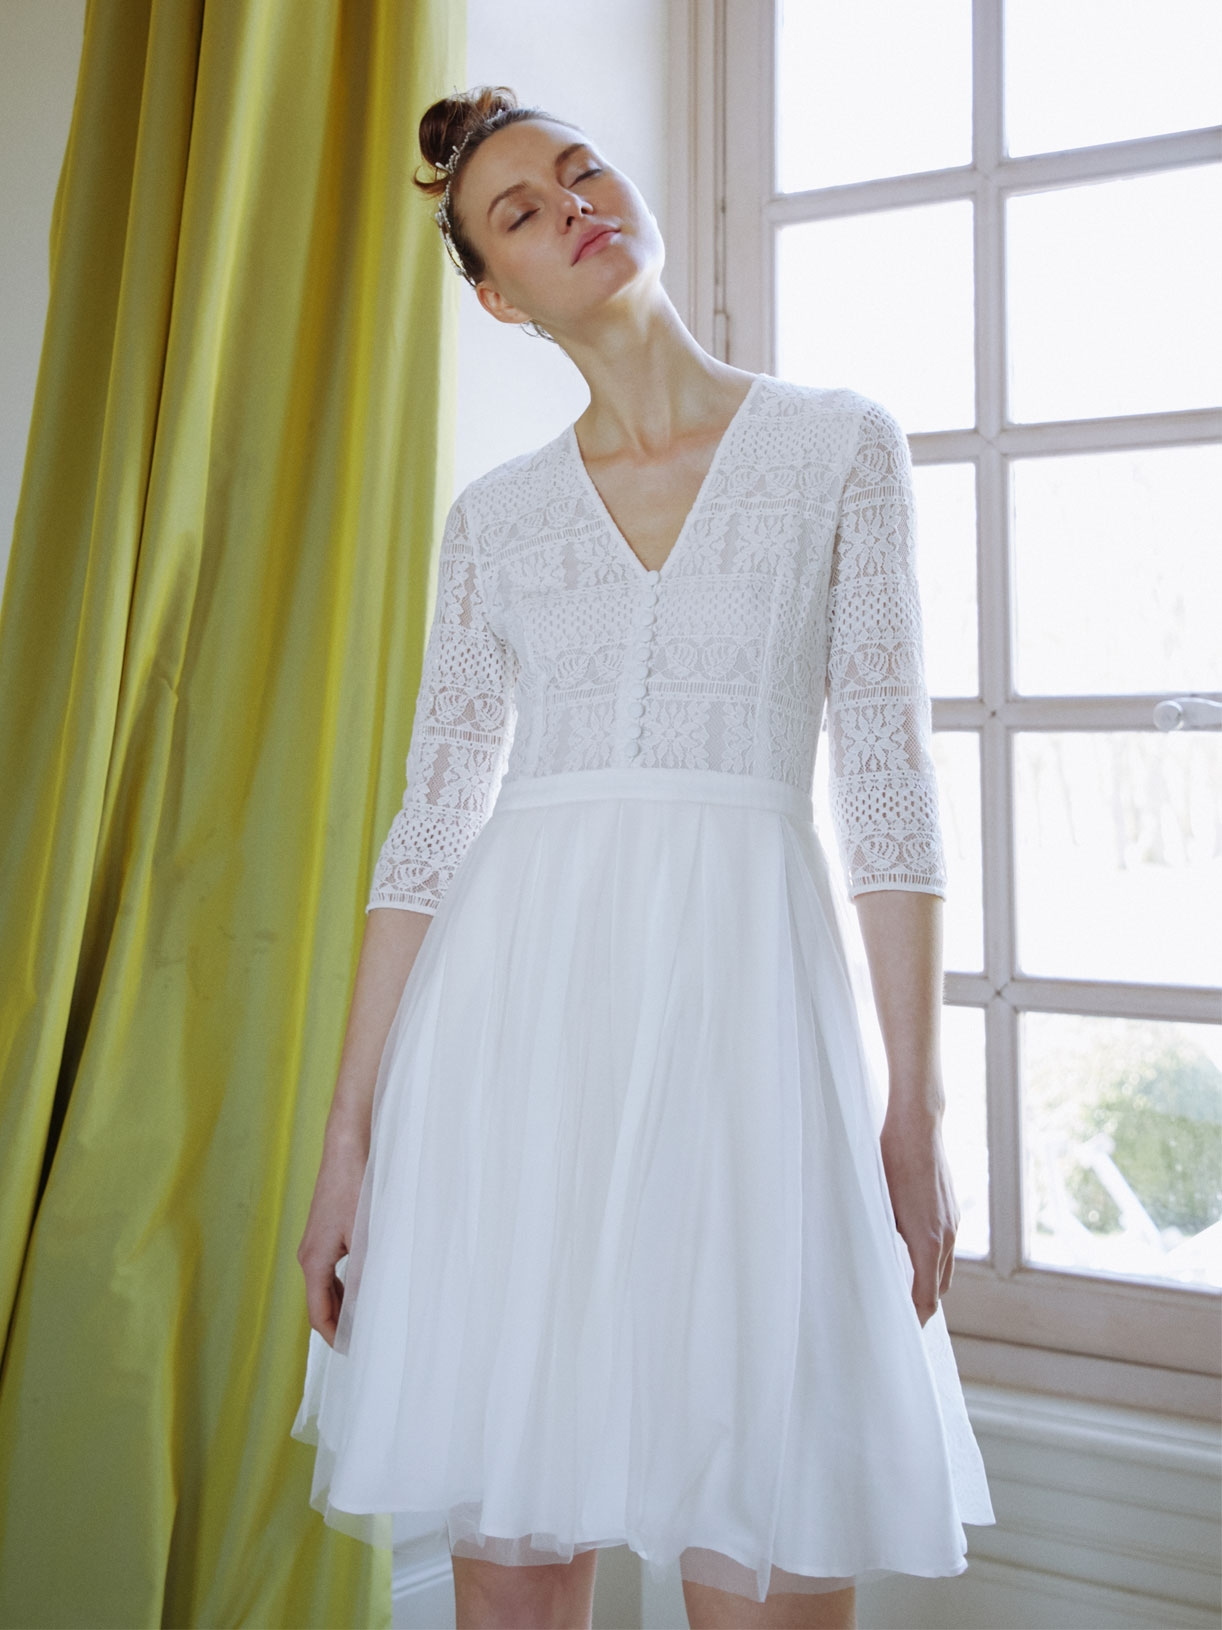 Robe mariage civil tulle